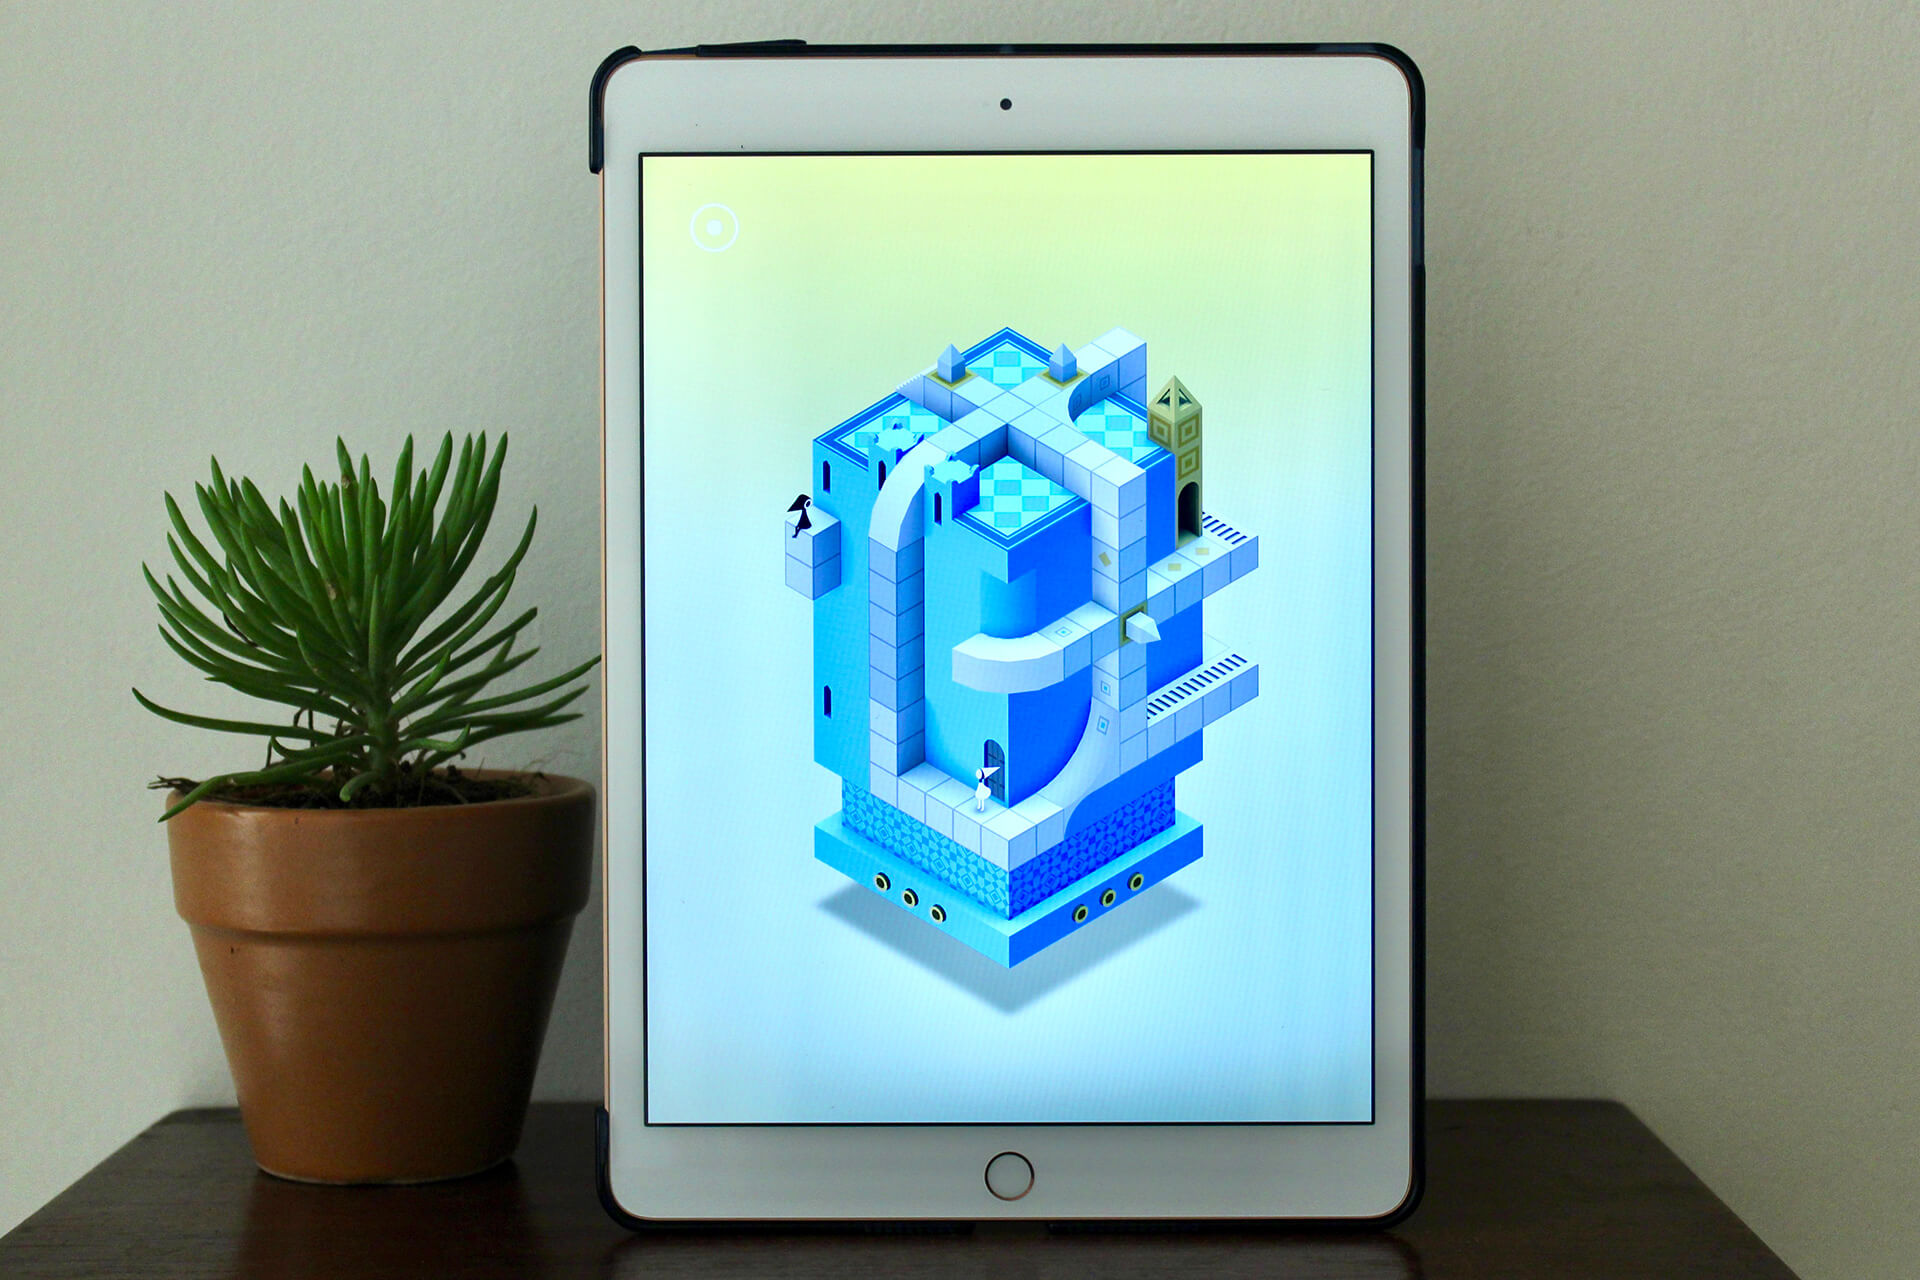 Monument Valley is an award-winning game created by Ustwo Games and published in 2014 | Ustwo Games | Gamescapes | STIRworld